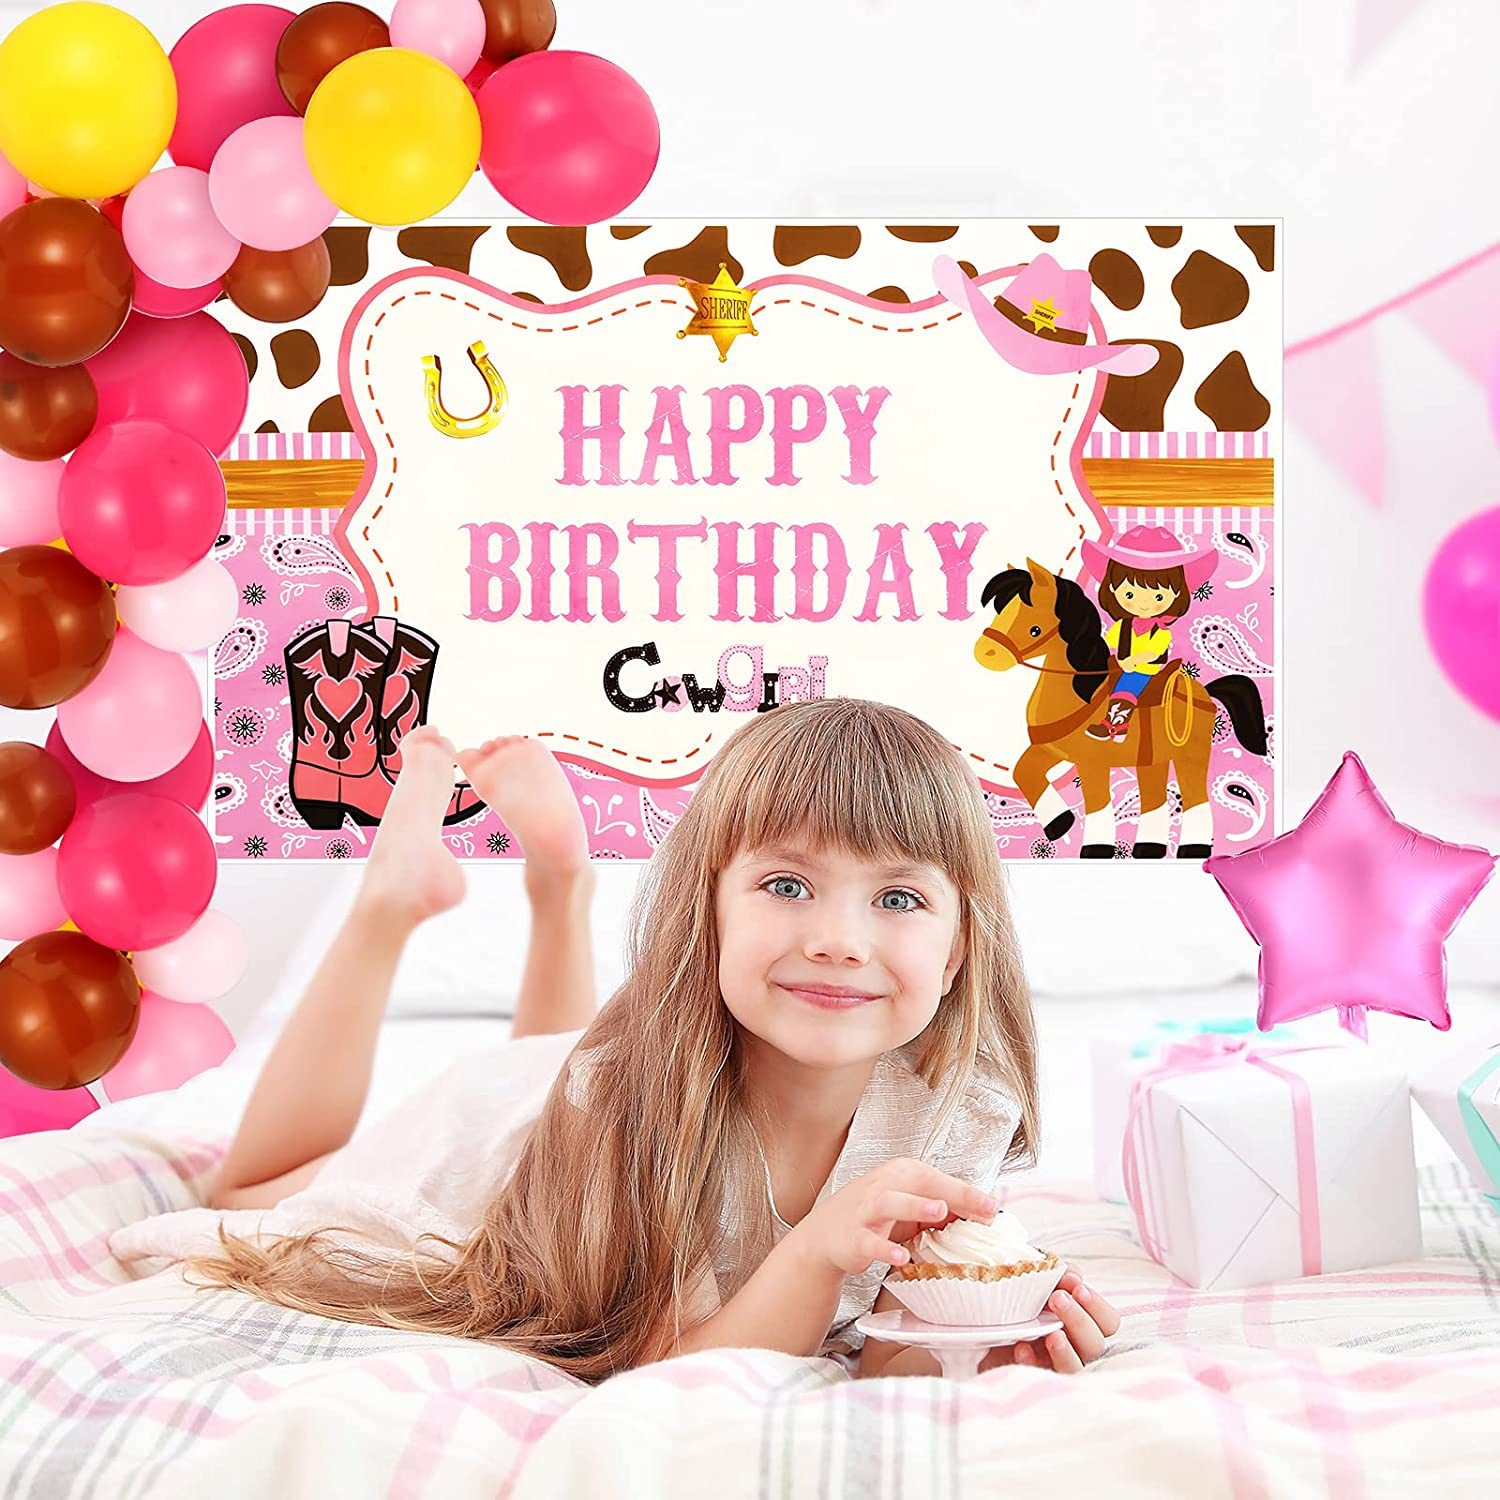 85 Pieces Cowgirl Themed Party Decoration Set Includes Cowgirl Themed Party Backdrop and Pink Star Foil Balloon Horse Latex Balloons Colorful Latex Balloons for Birthday Party Baby Shower